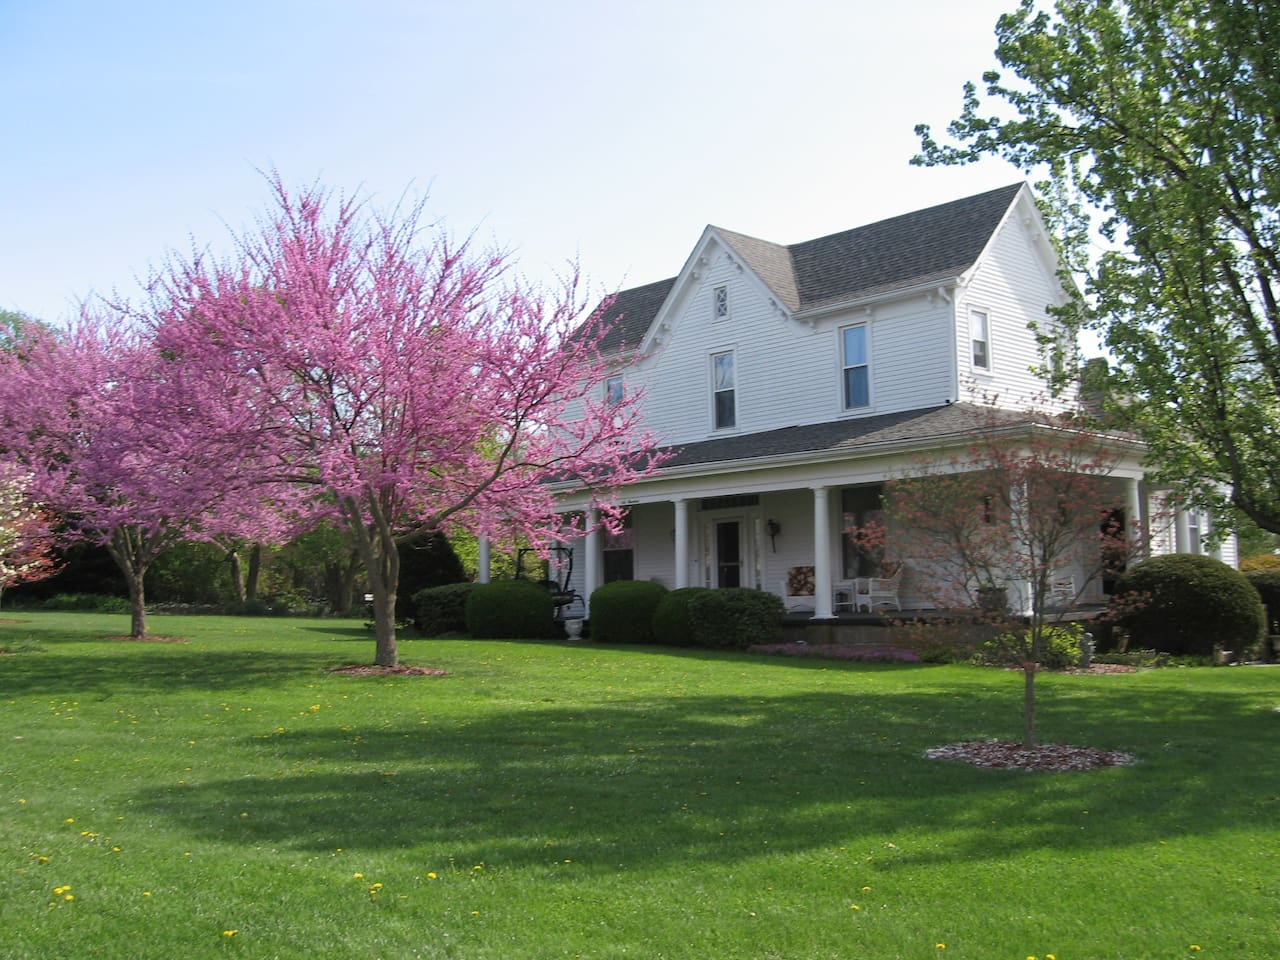 1898 Red Bud Bed & Breakfast